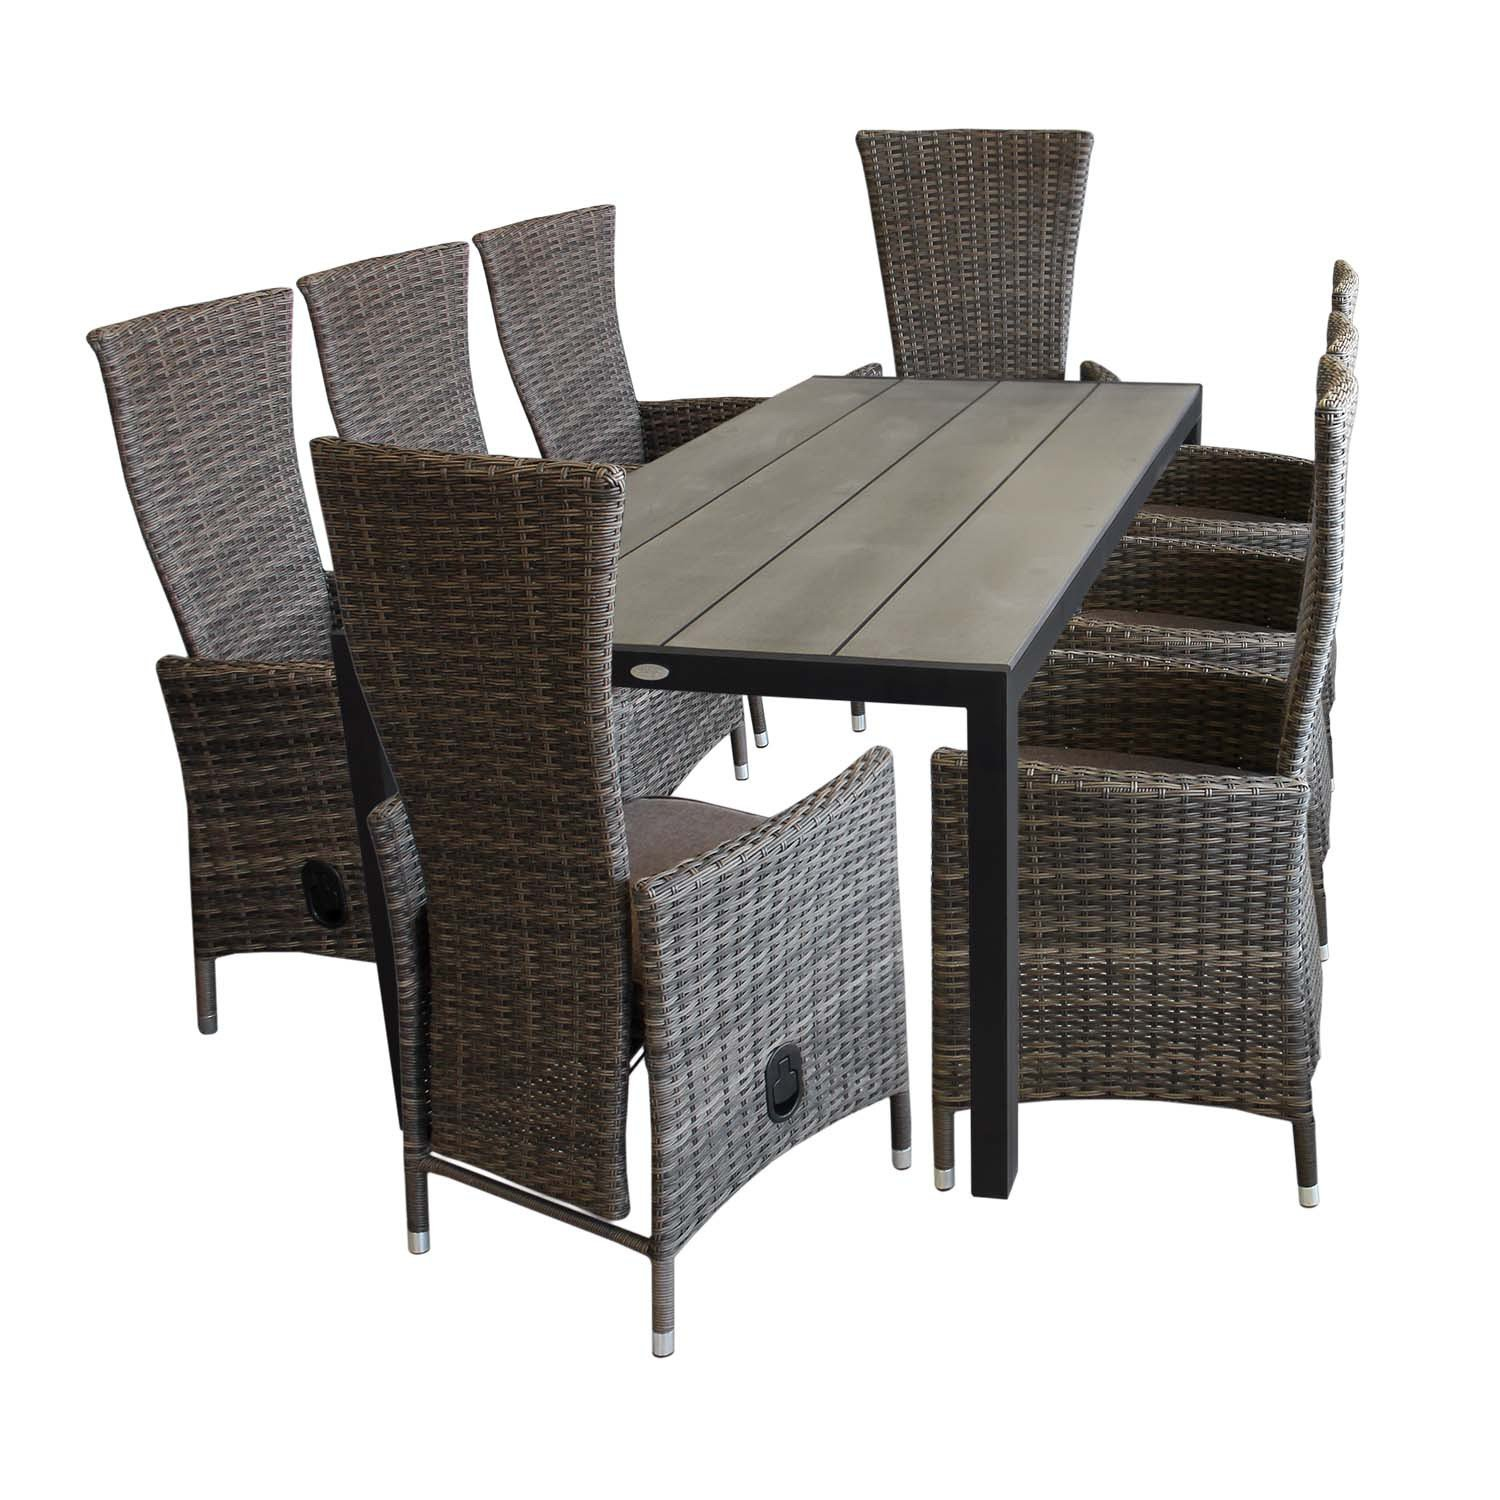 9tlg aluminium polywood gartenm bel set gartentisch 205x90cm 8x gartensessel r ckenlehne. Black Bedroom Furniture Sets. Home Design Ideas